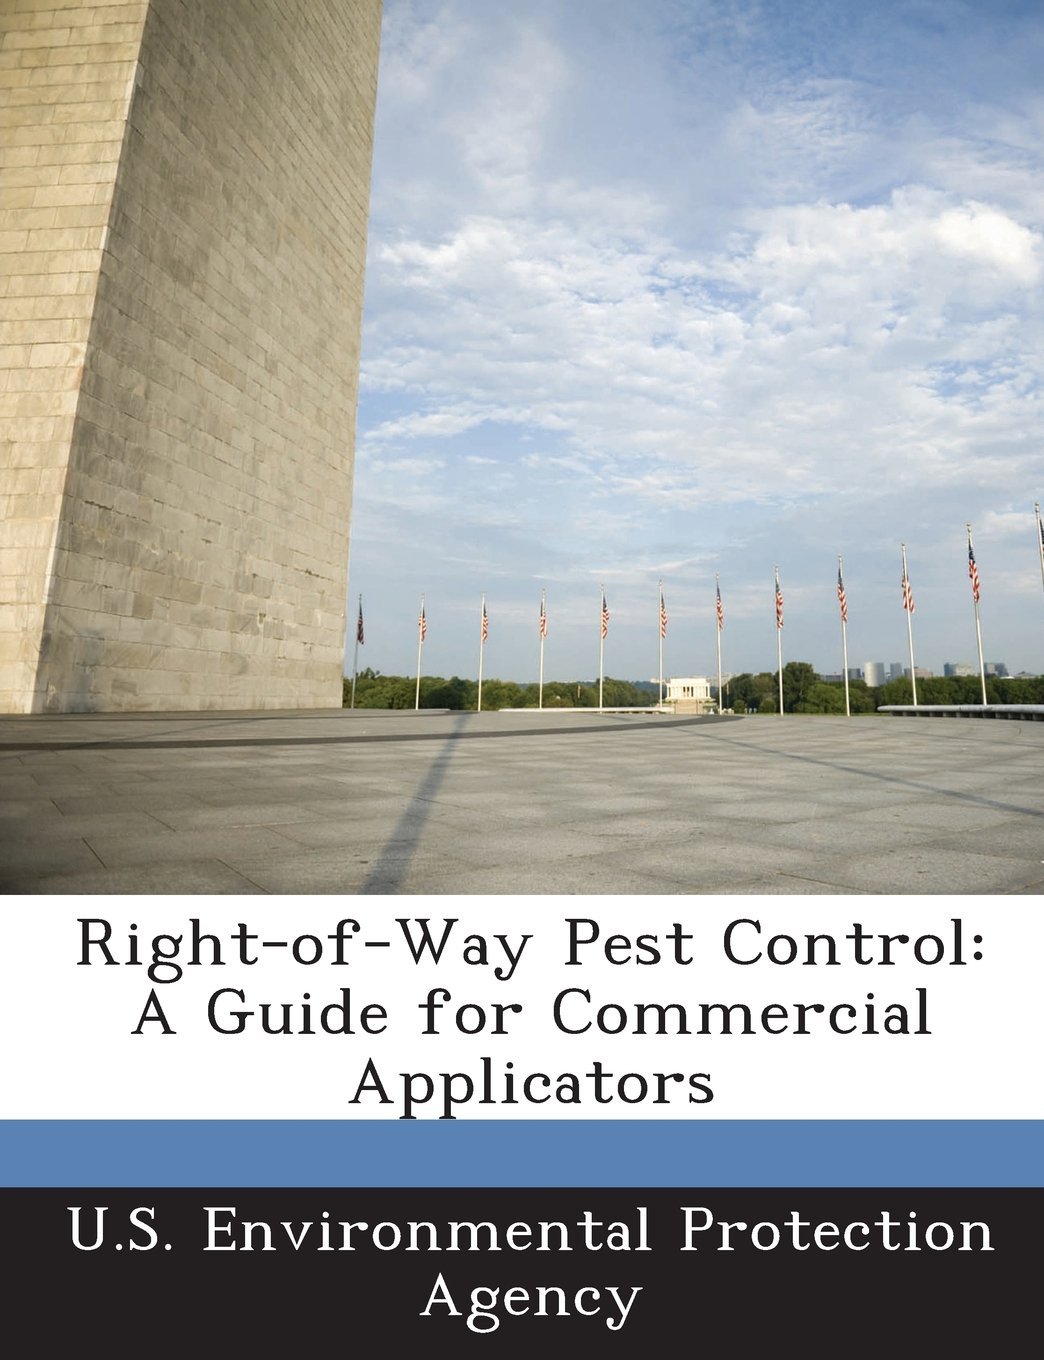 Right-of-Way Pest Control: A Guide for Commercial Applicators